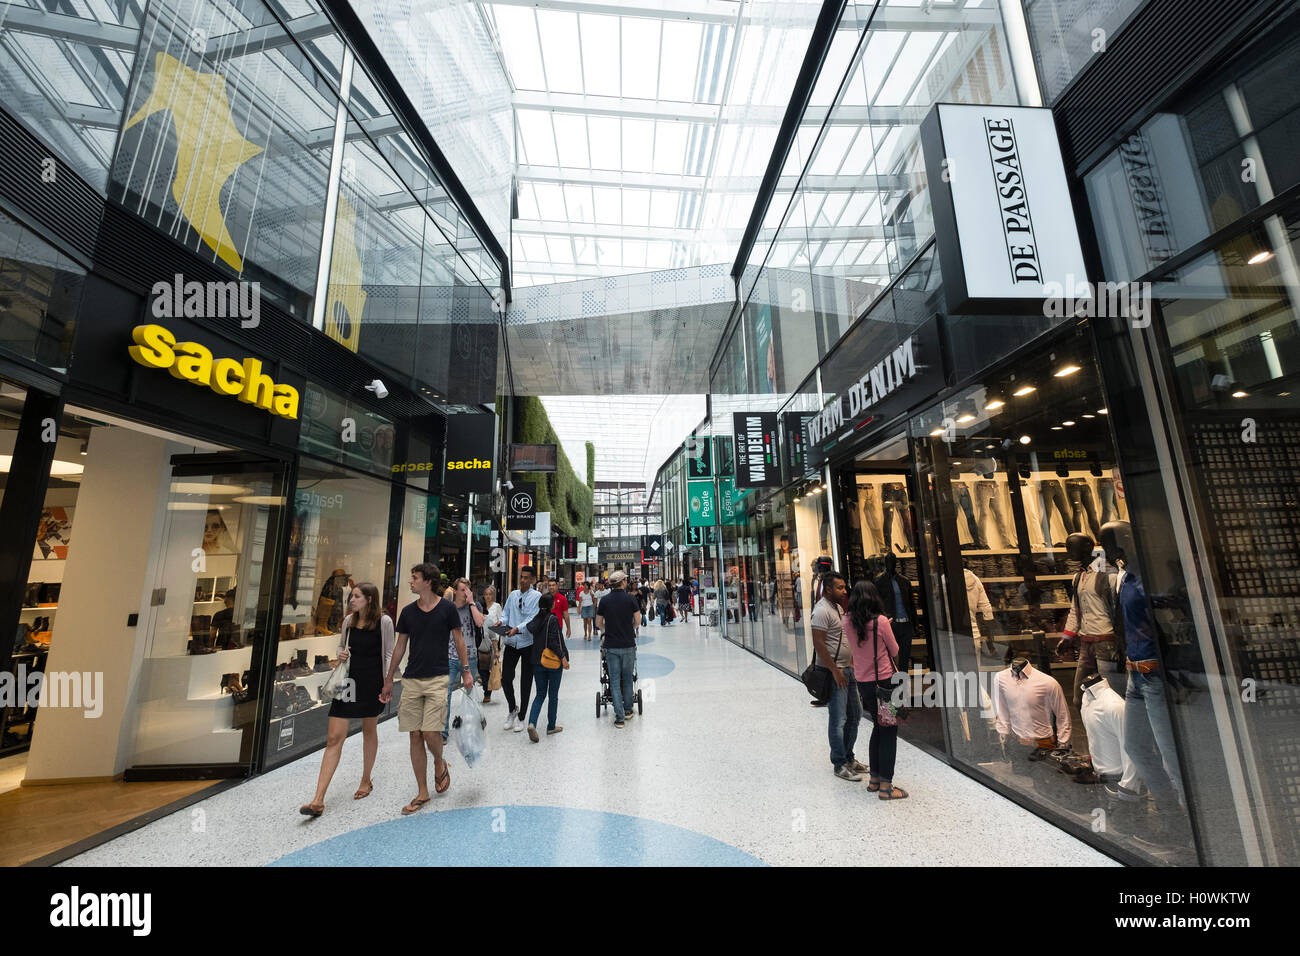 Interior of new De Passage shopping mall in Den Haag, The Hague Stock Photo, Royalty Free Image